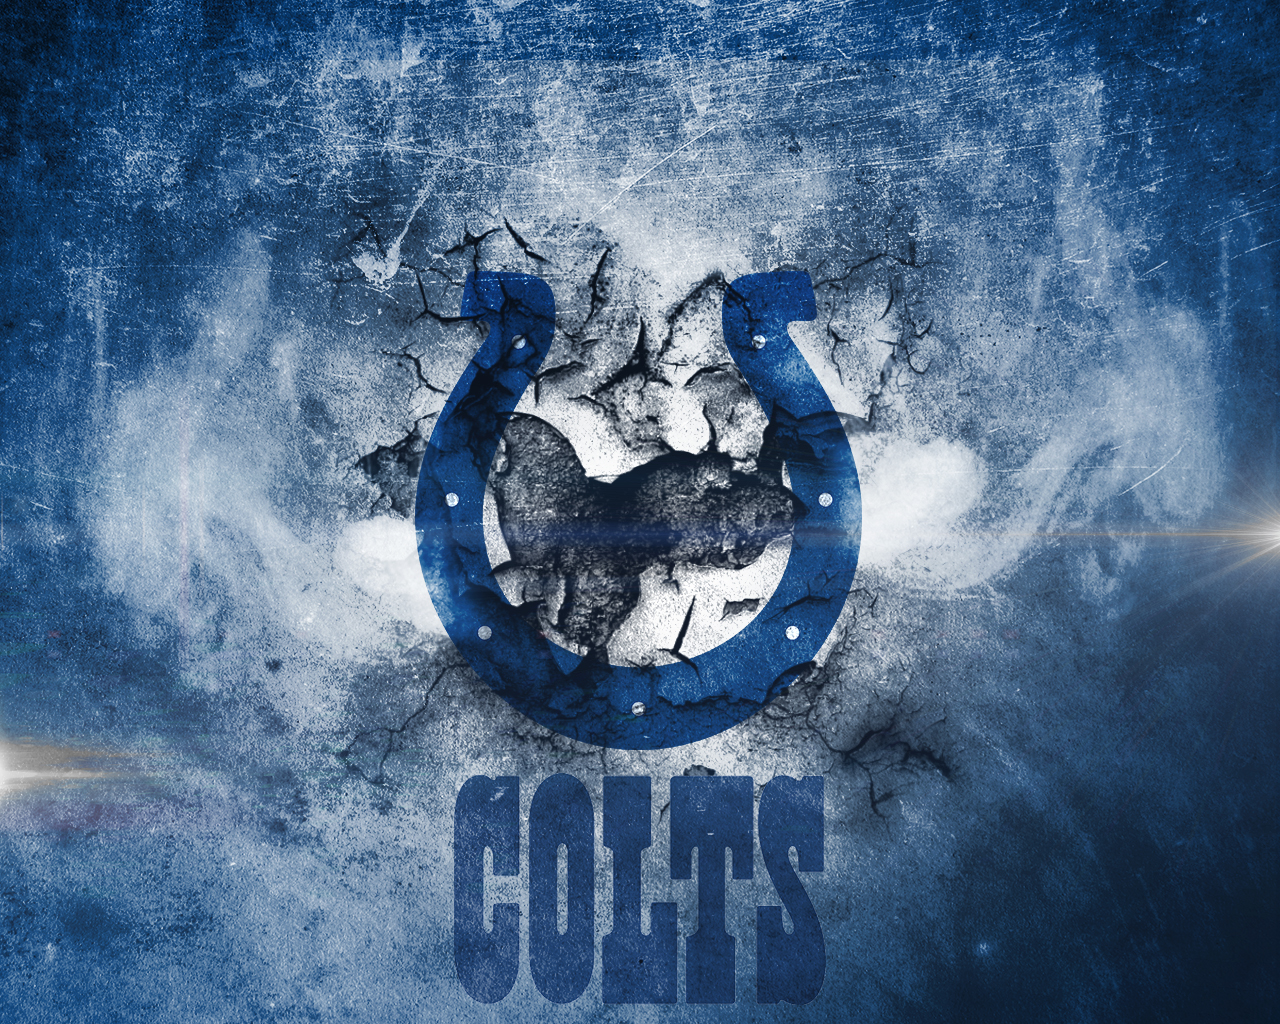 3d Wallpaper Ny Giants 11 Hd Indianapolis Colts Wallpapers Hdwallsource Com